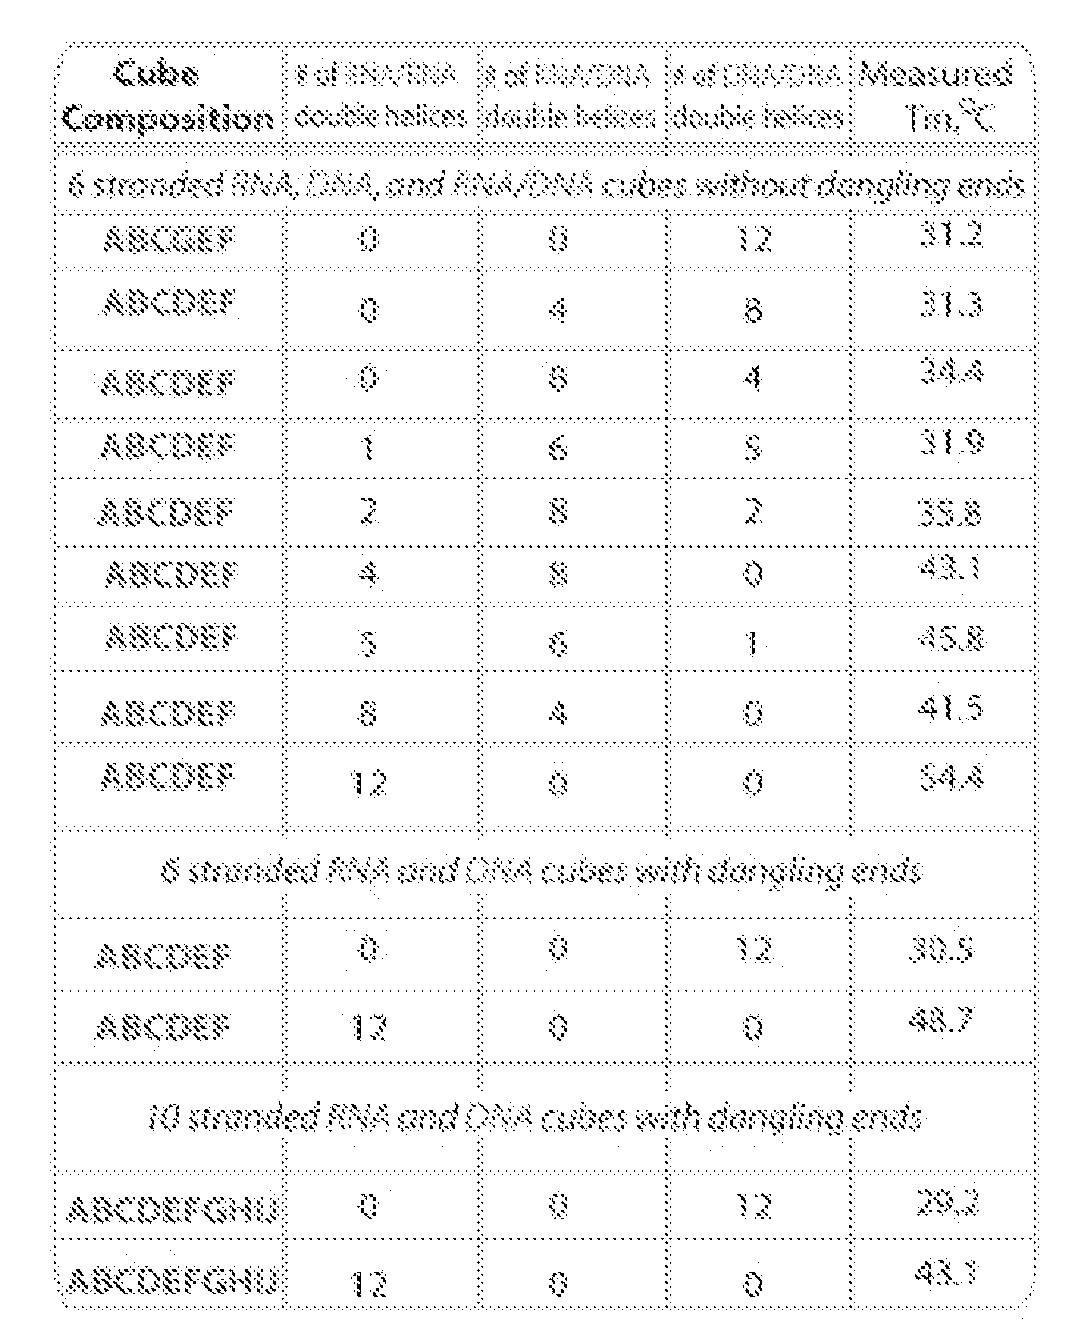 Wo2010148085a1 Rna Nanoparticles And Methods Of Use Google Patents More Information About Dog Origami Diagram On The Site Http Static Figure Imgf000121 0001